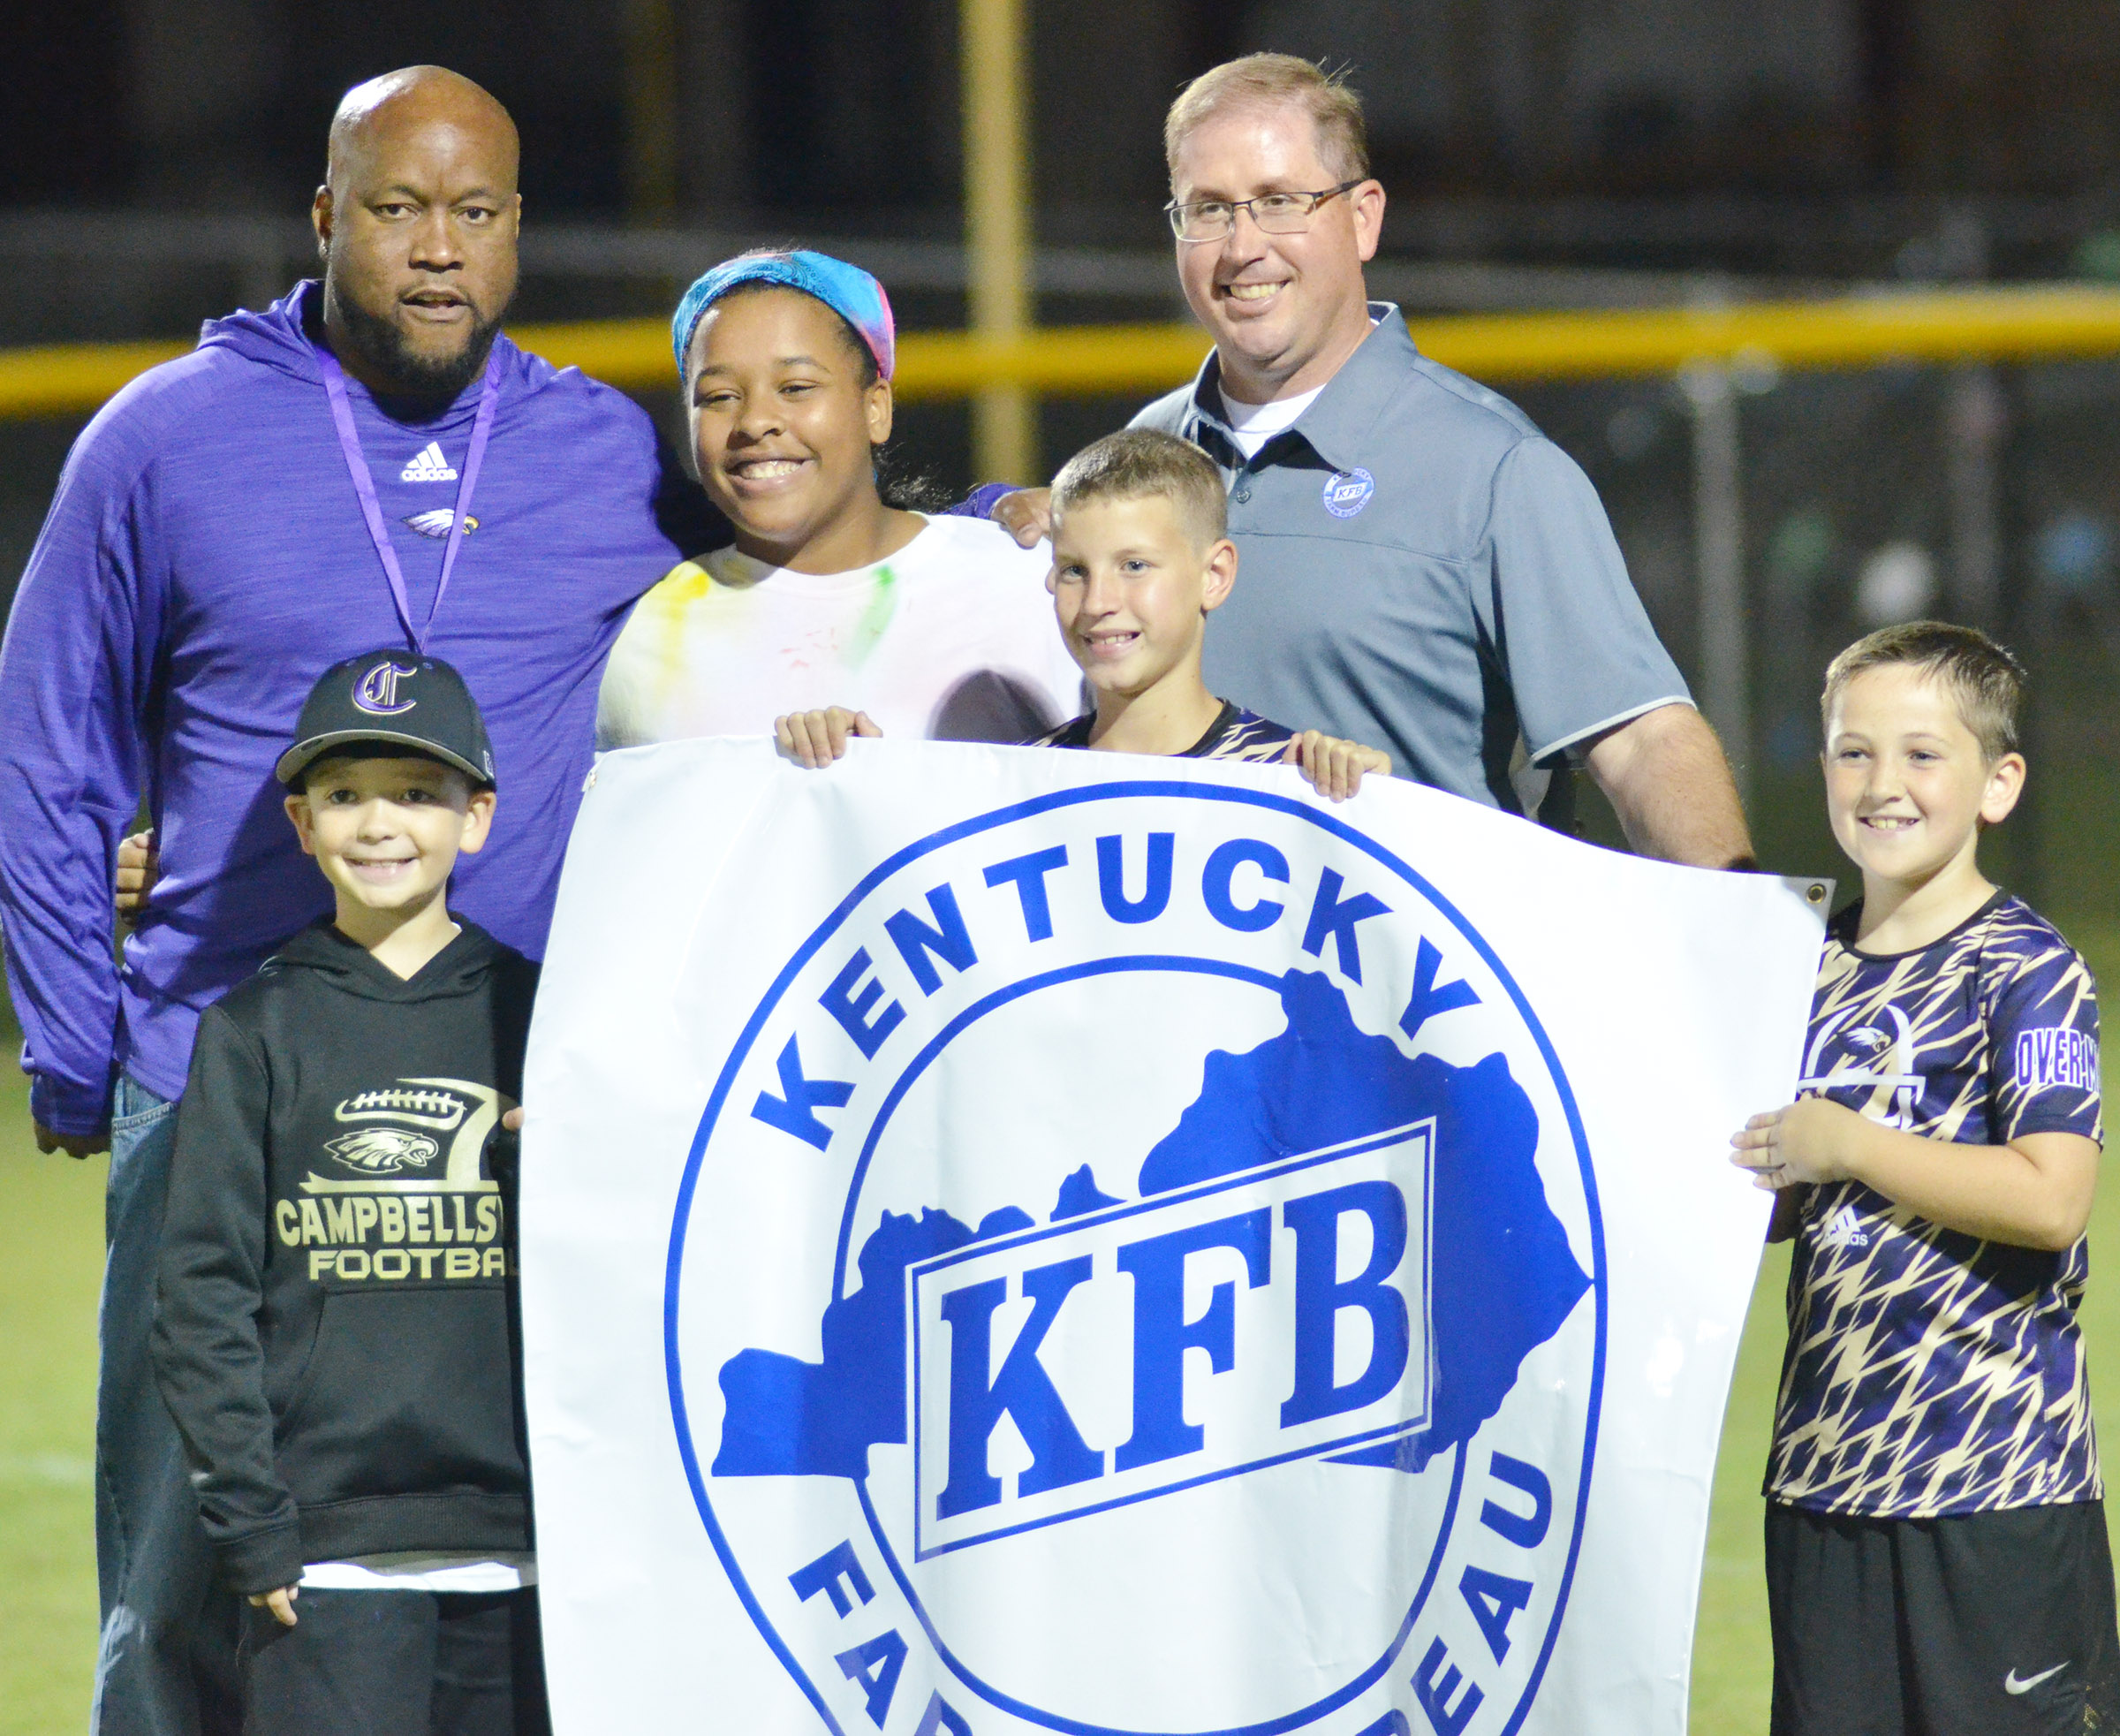 Kentucky Farm Bureau sponsors the Kick for Kids, which awards $50 for a successful field goal attempt during halftime. From left are Campbellsville Elementary School fourth-grader Cameron Estes, CHS girls' basketball head coach Anthony Epps, who made the field goal, CHS senior Kayla Young, who received $50 for Epps's successful kick, fifth-grader Rowan Petett, Farm Bureau agent Darrin Price and third-grader Luke Adkins.